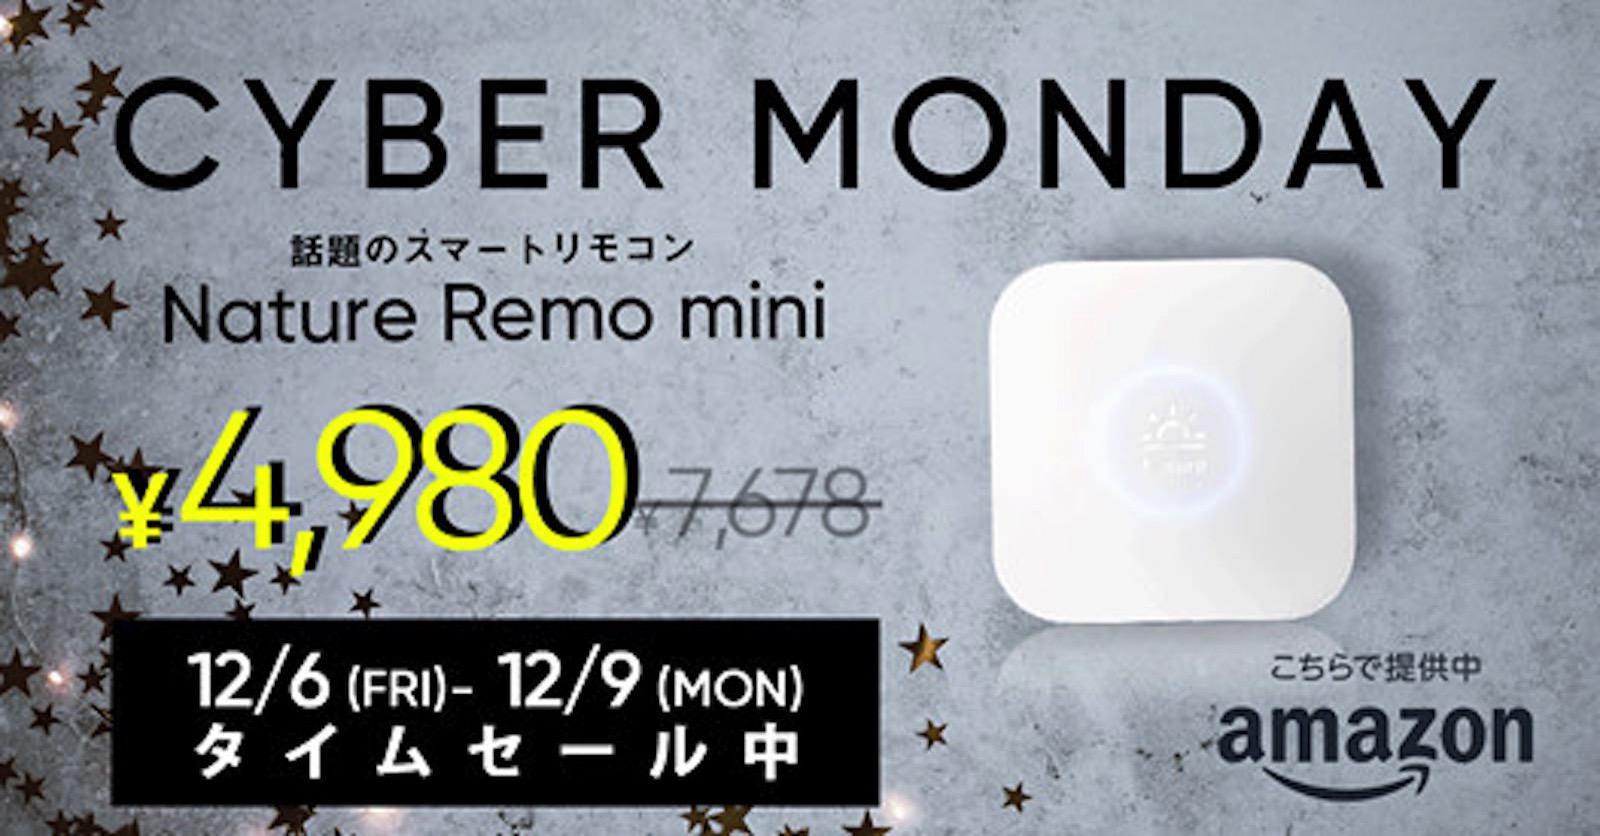 Cyber Monday Nature Remo Mini Sale